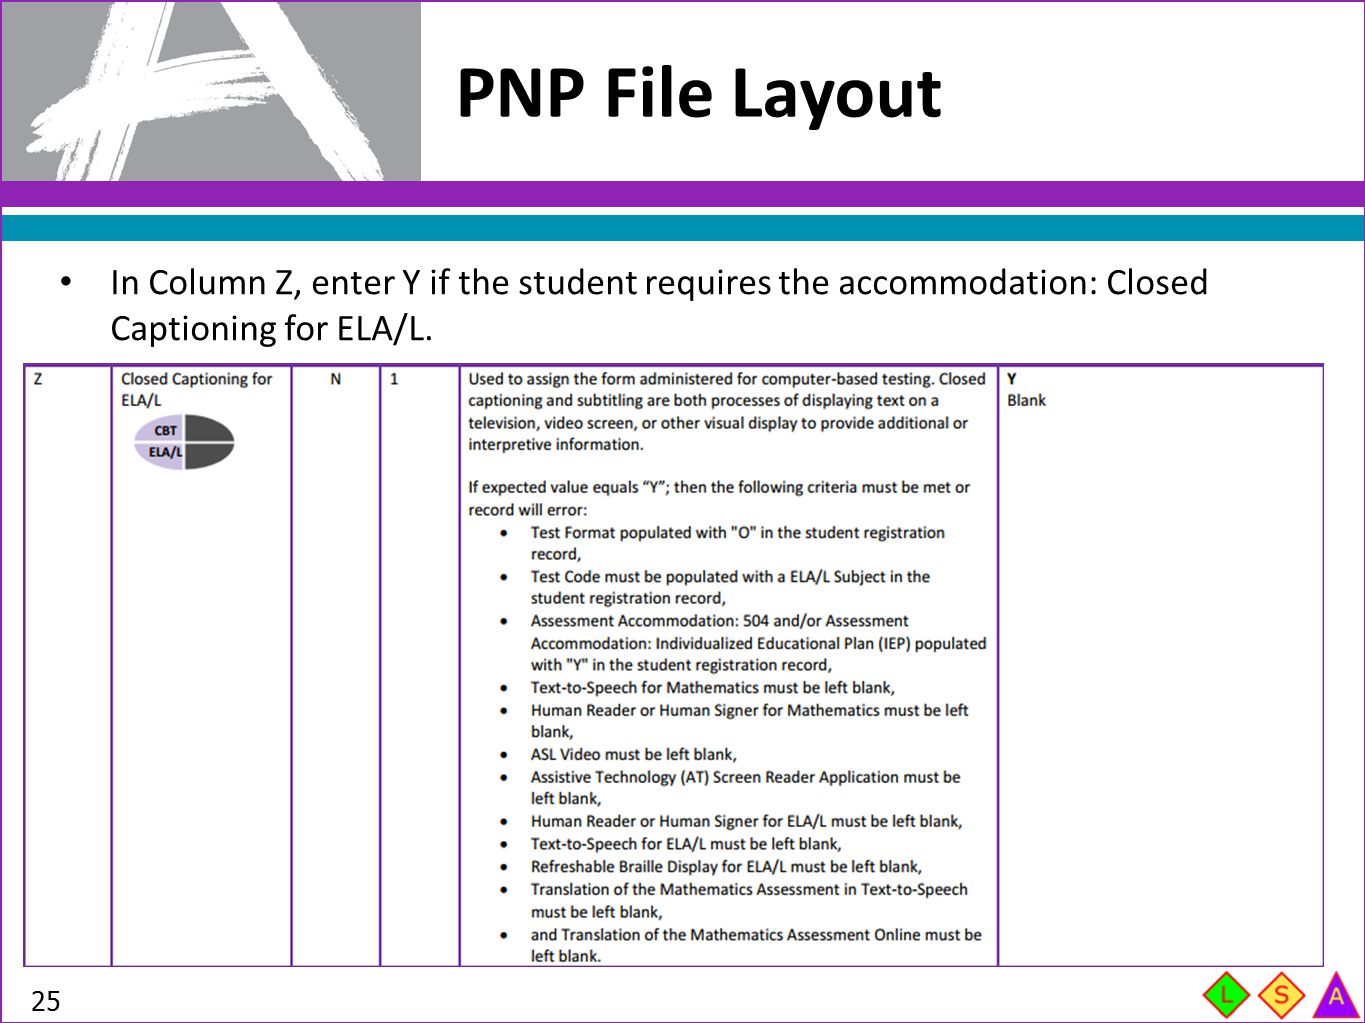 PNP File Layout In Column Z, enter Y if the student requires the accommodation: Closed Captioning for ELA/L.